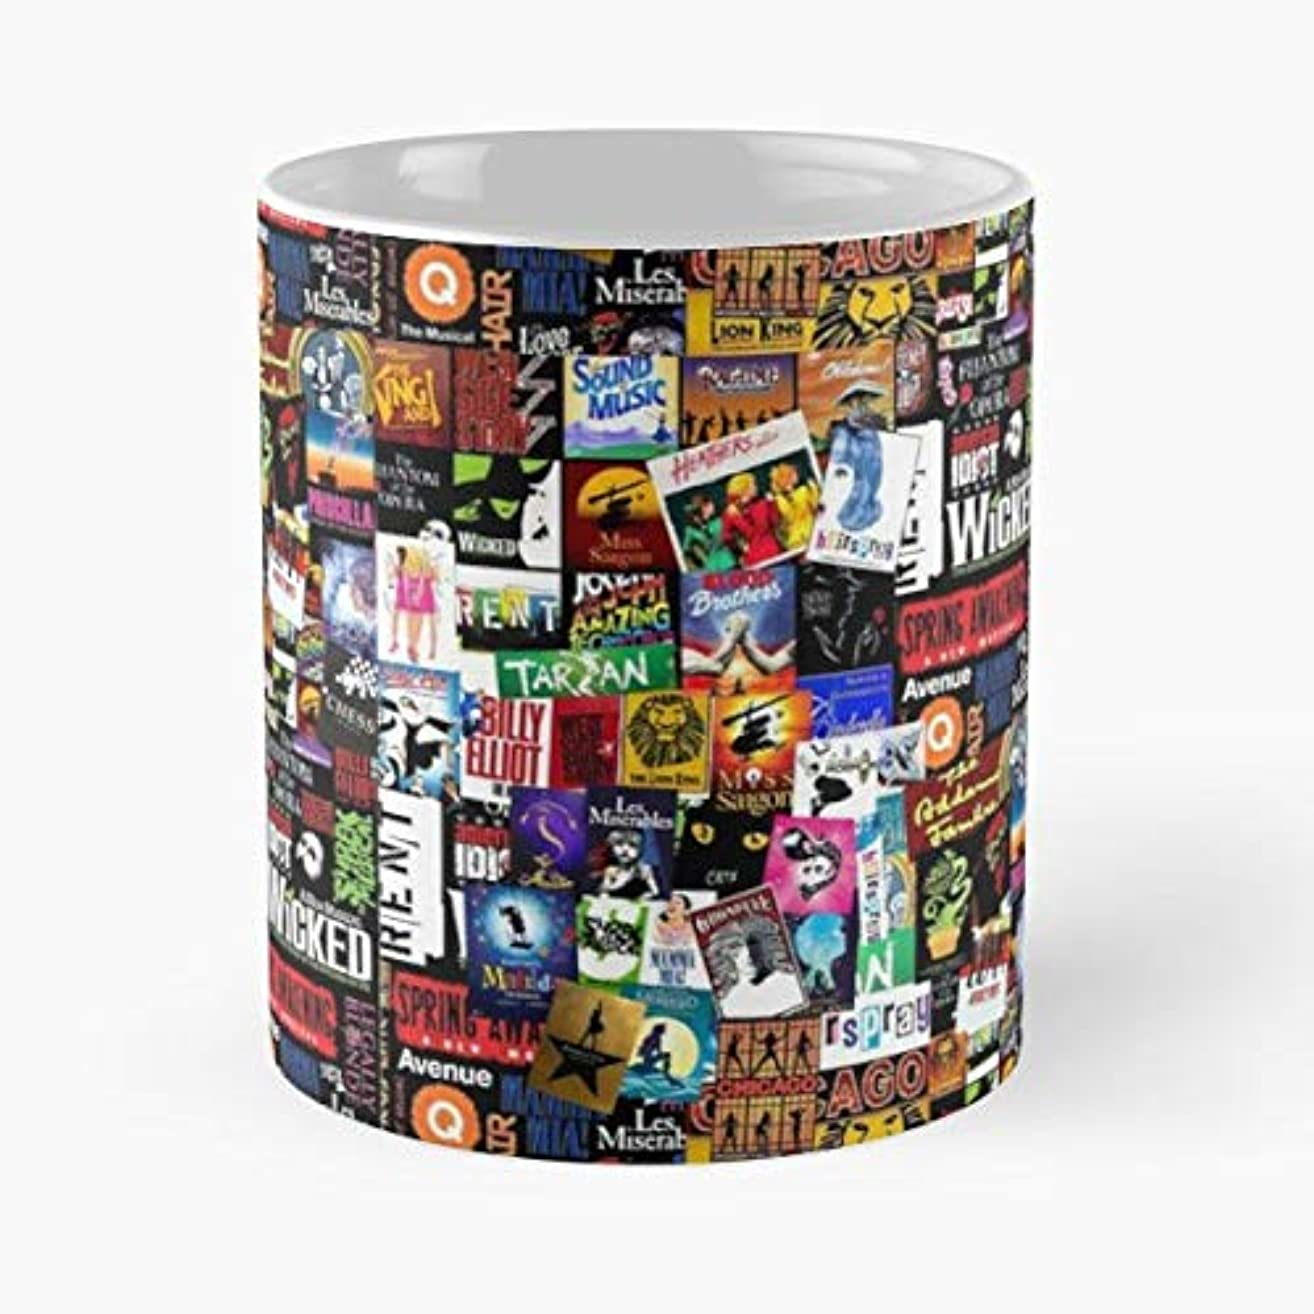 Musicals Broadway Westend London - 11 Oz Coffee Mugs Unique Ceramic Novelty Cup, The Best Gift For Christmas.